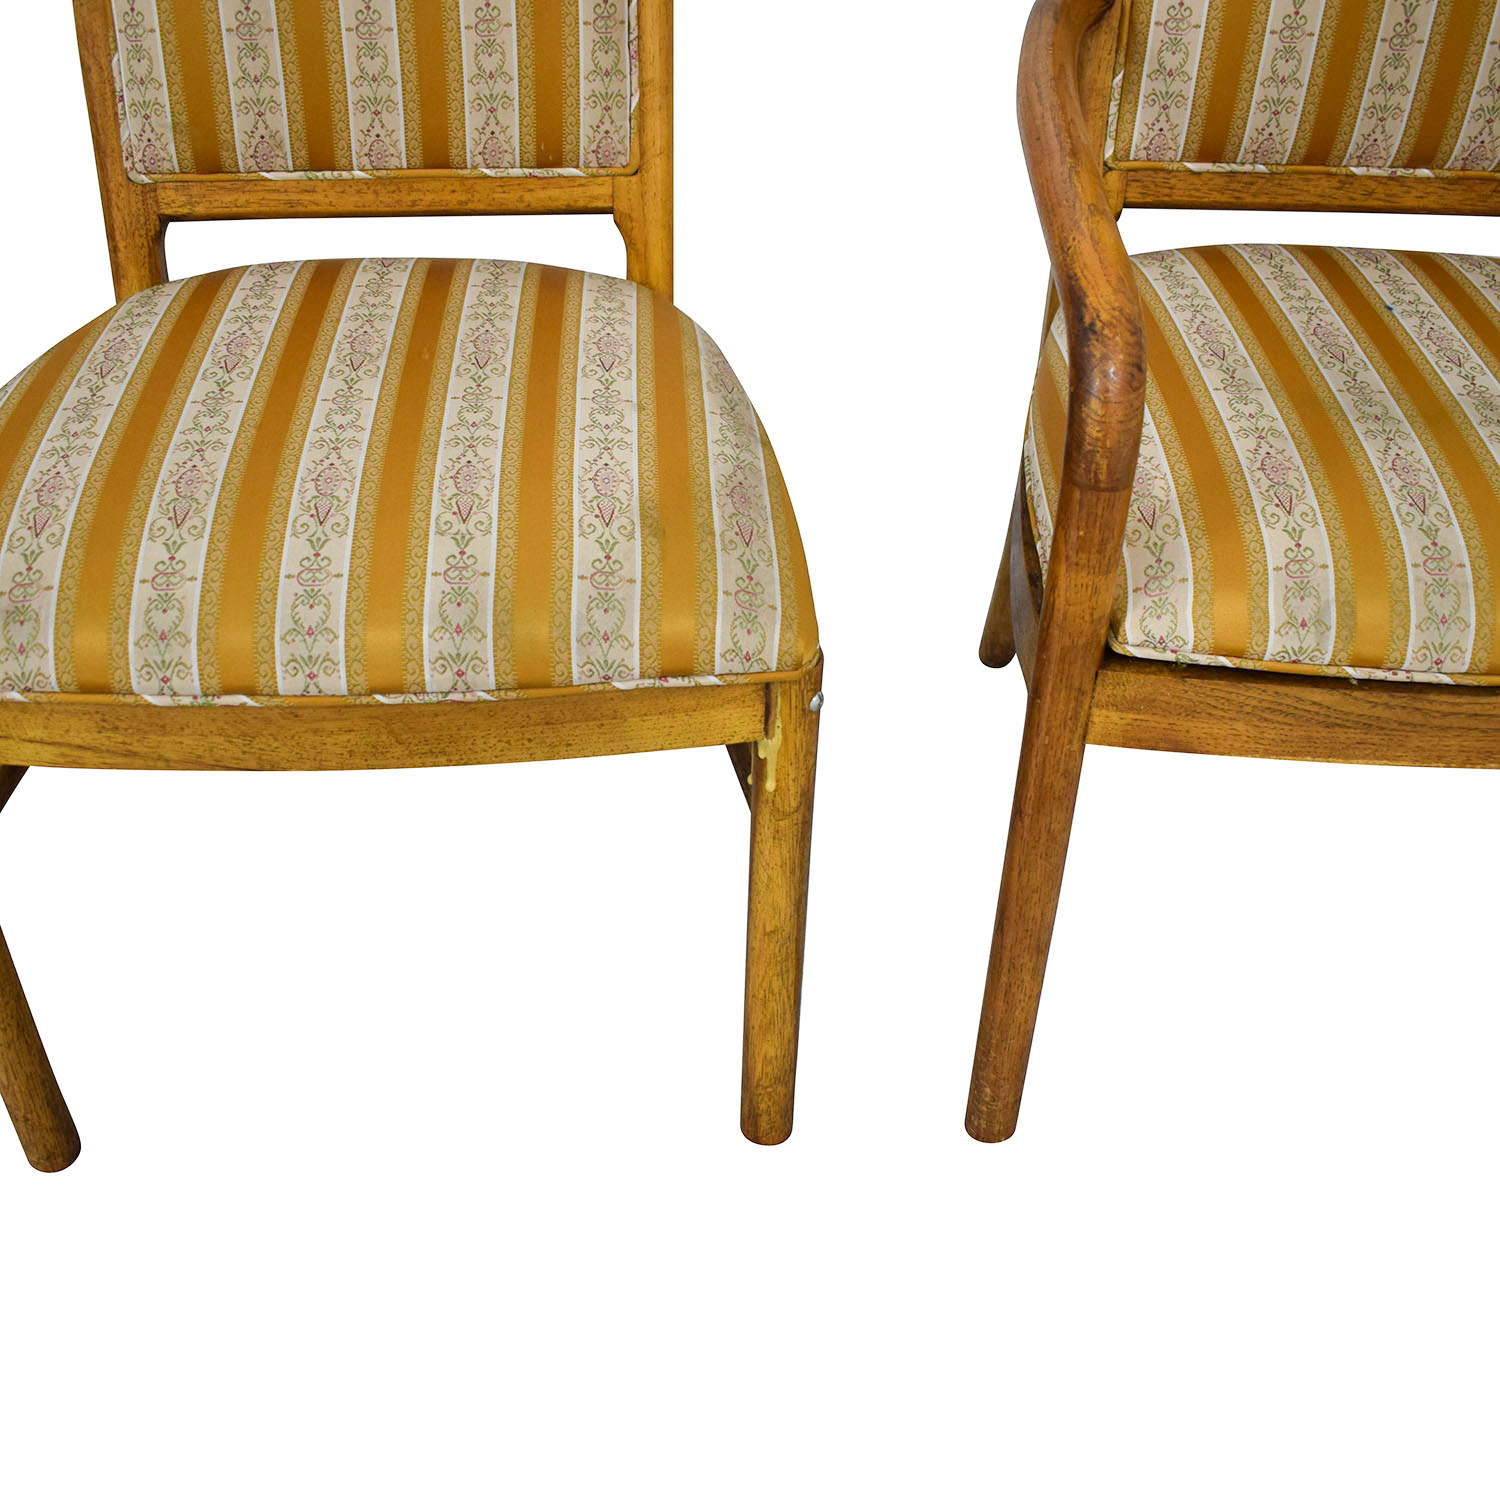 Drexel Heritage Drexel Heritage Dining Chairs dimensions